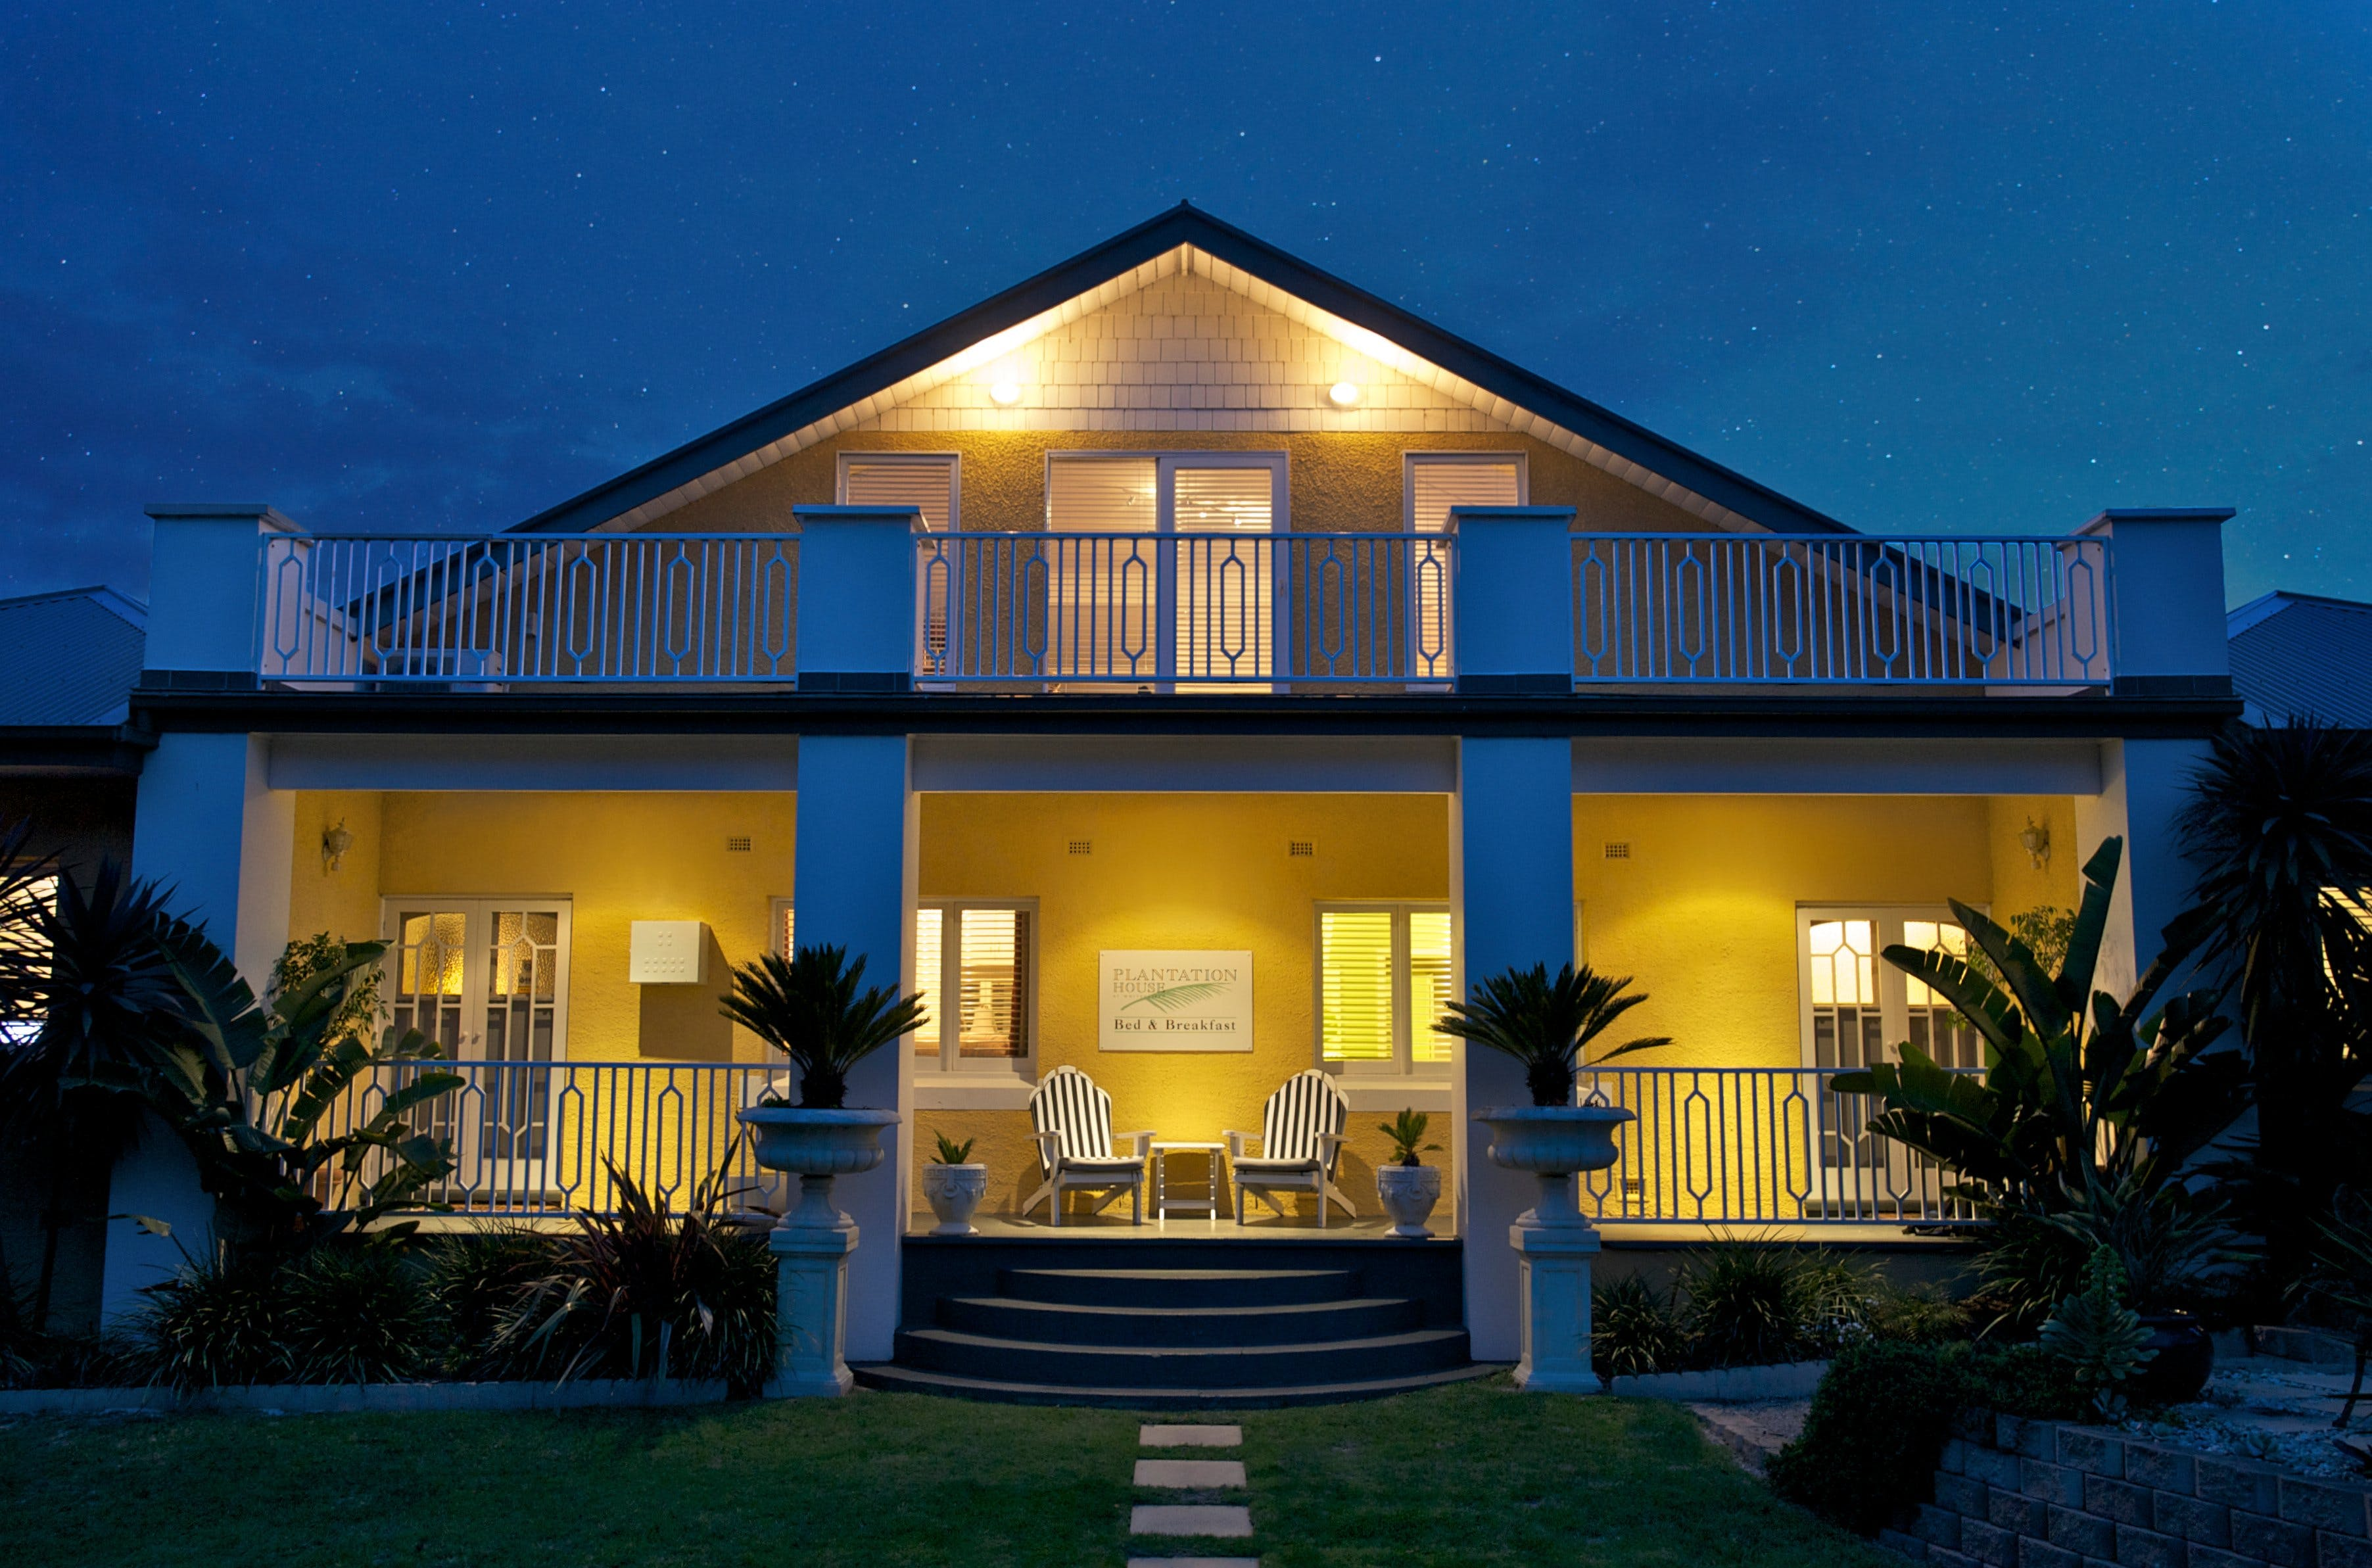 Plantation House at Whitecliffs - Whitsundays Accommodation